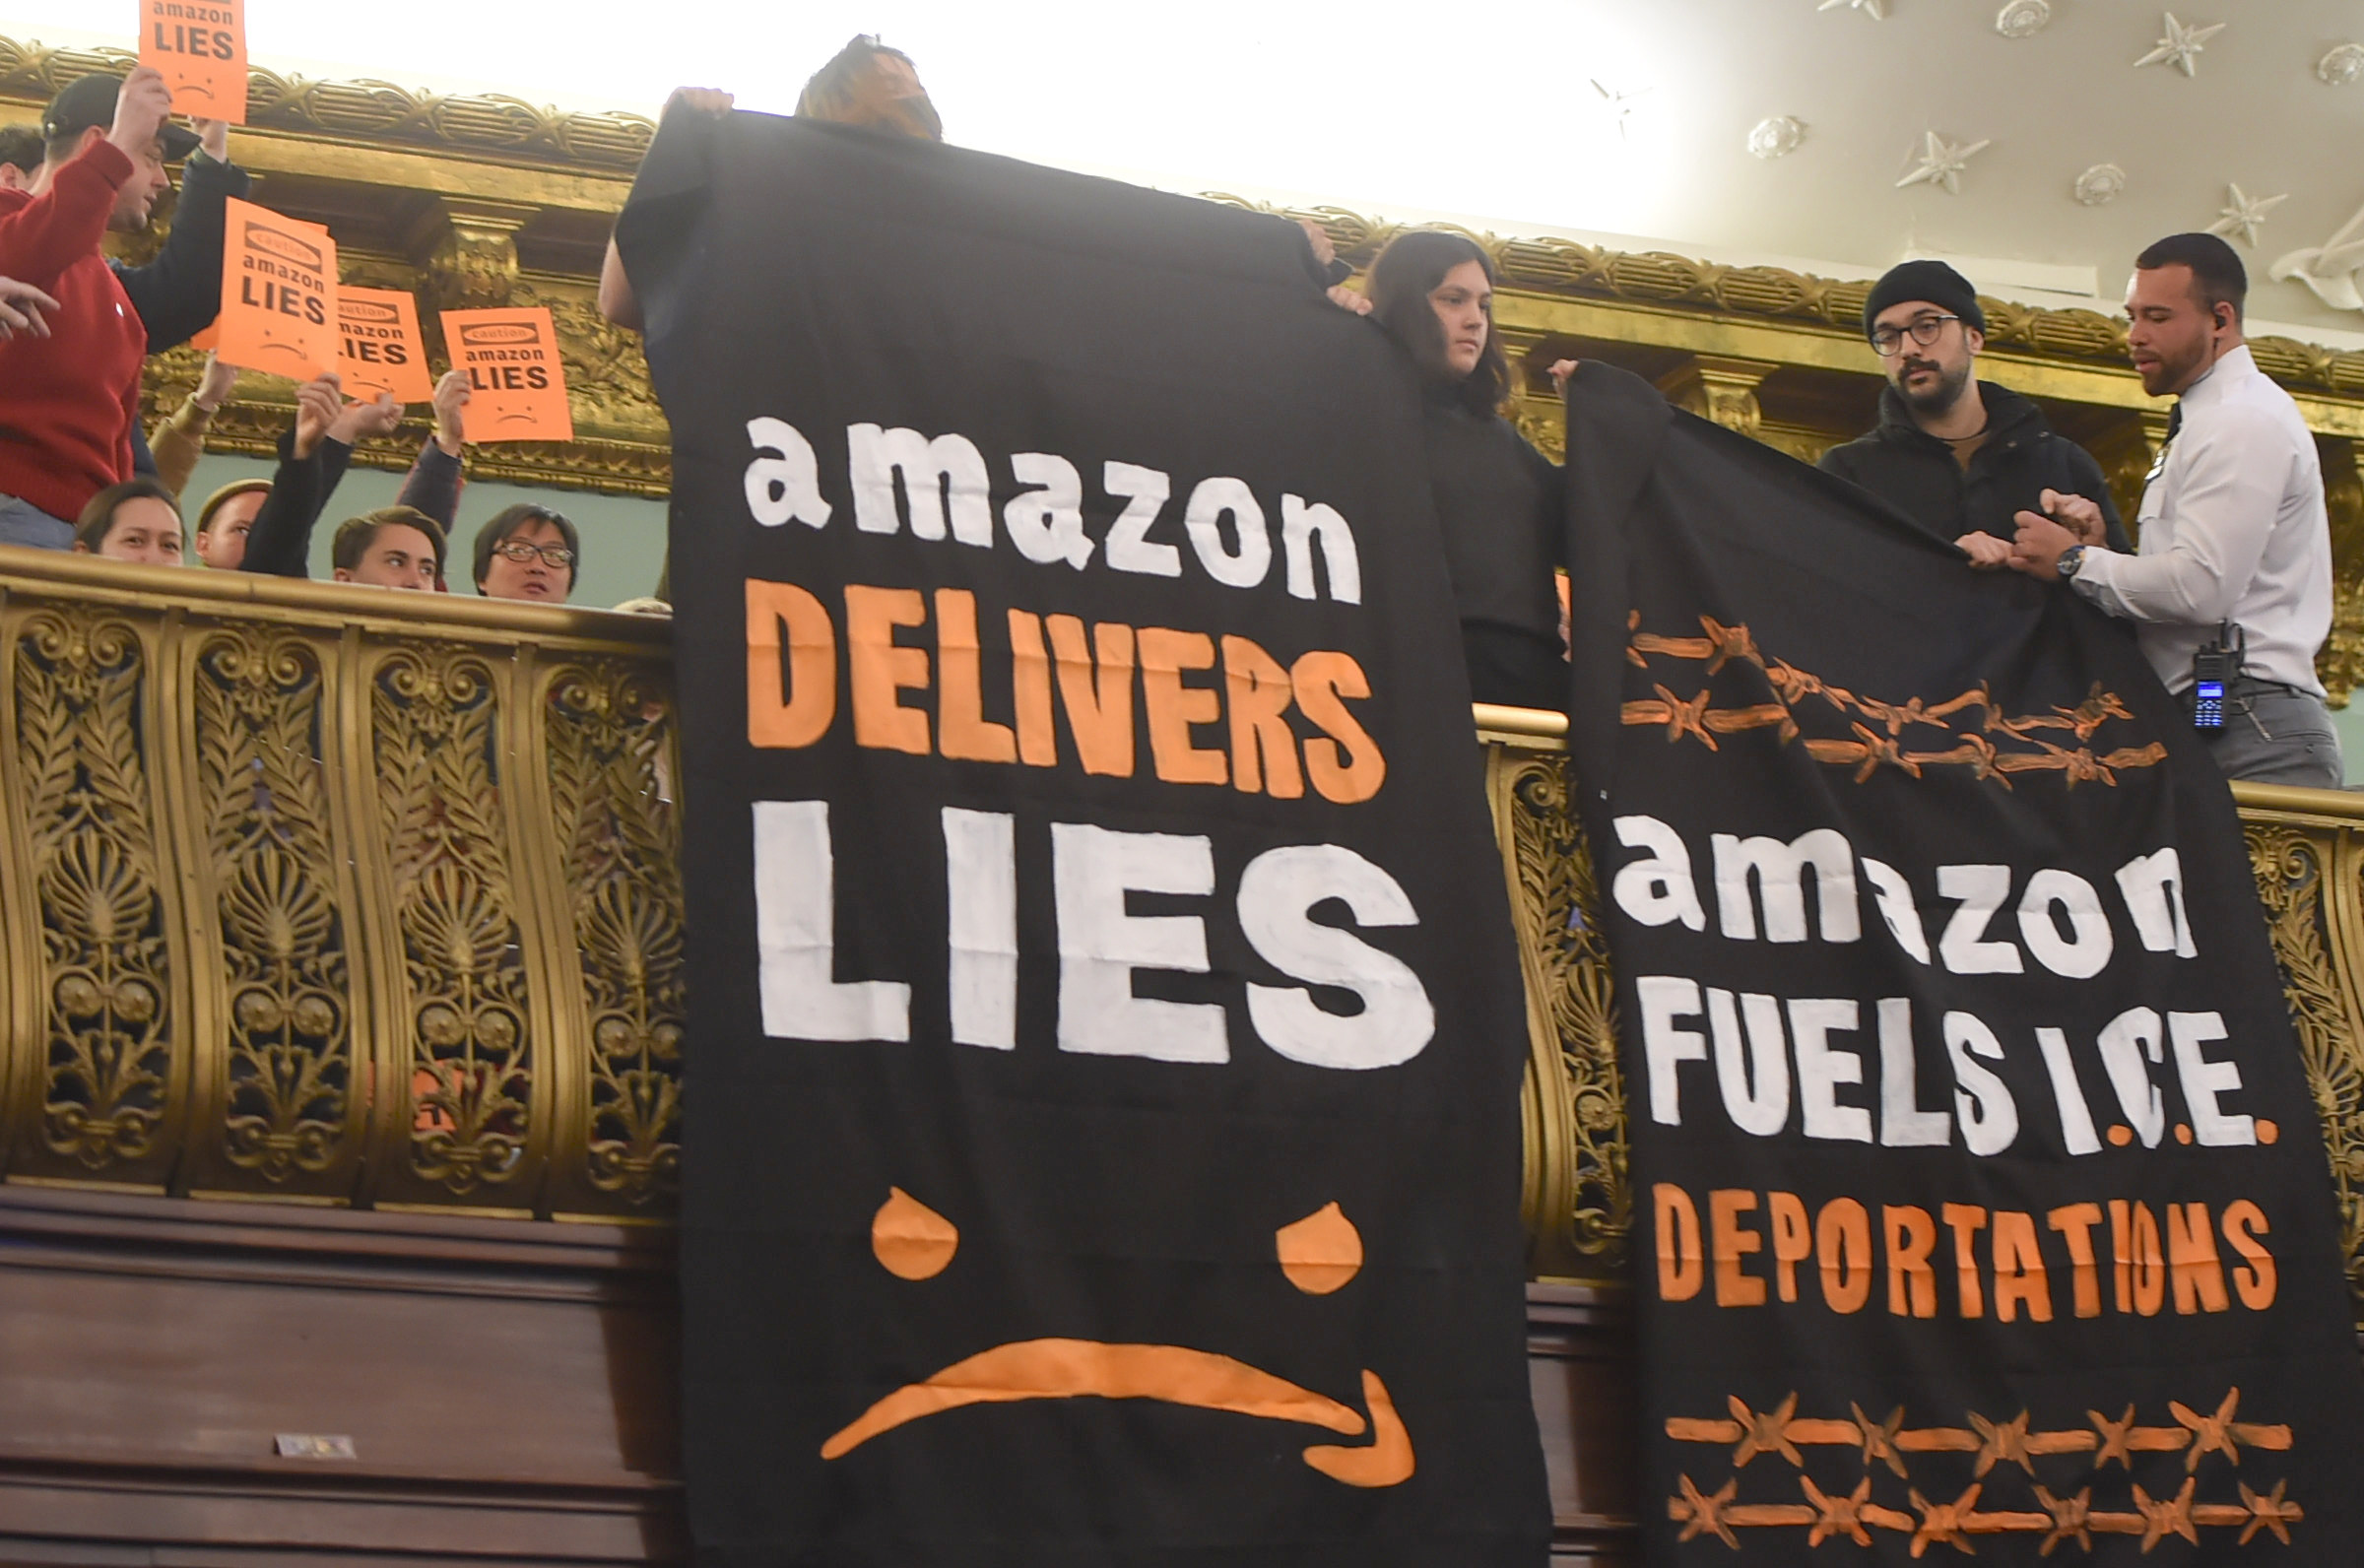 Protesters in front row of the City Council chamber display their disdain for the Amazon deal.  Eagle  photos by Todd Maisel.